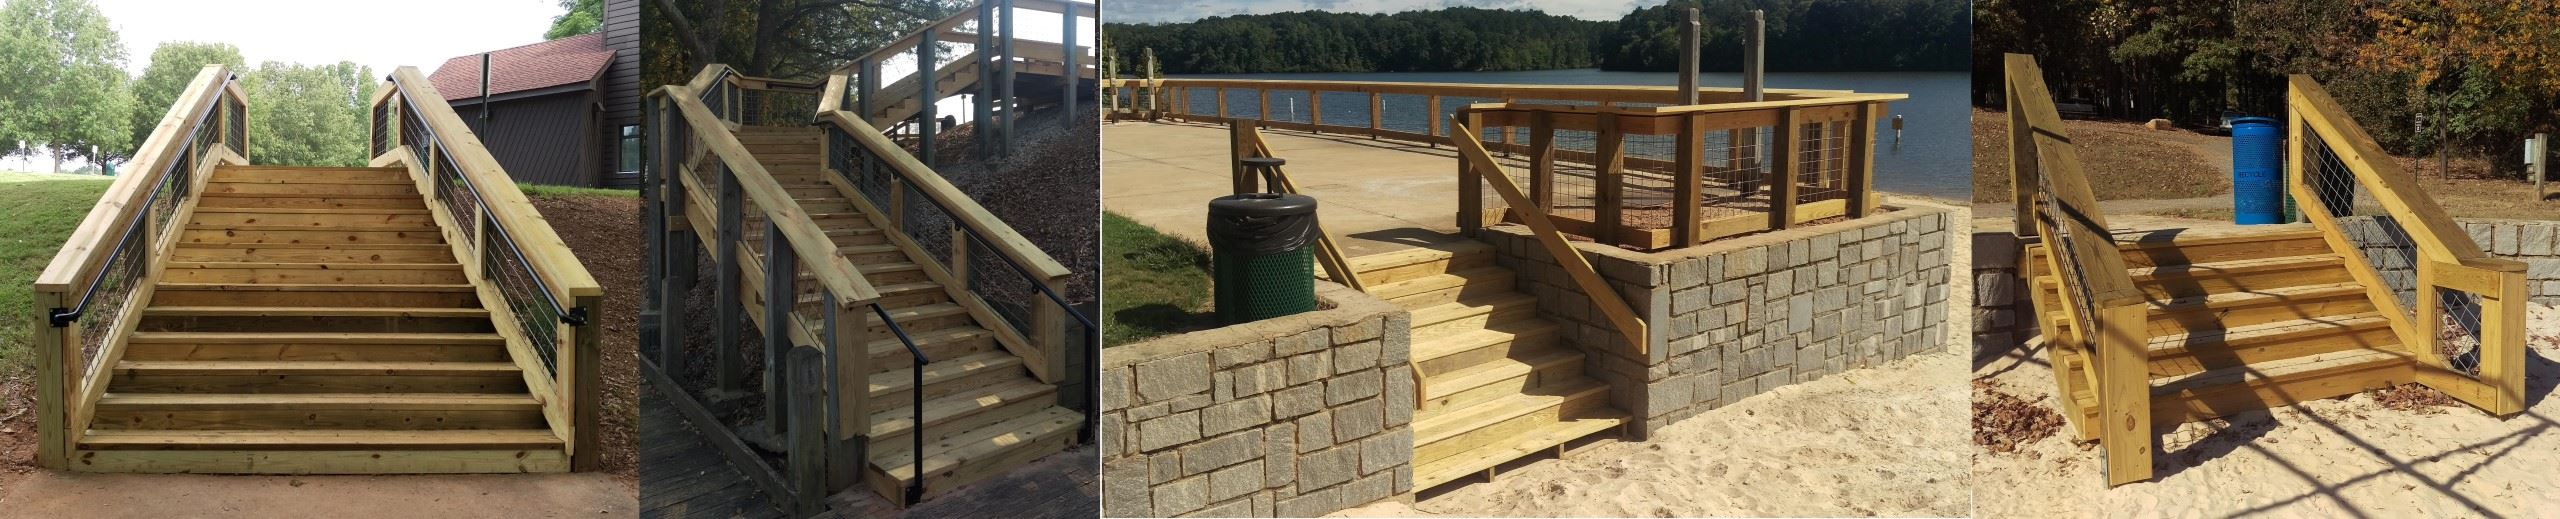 Photos collage of the four 2016 beachfront improvement projects at Sandy Creek Park.